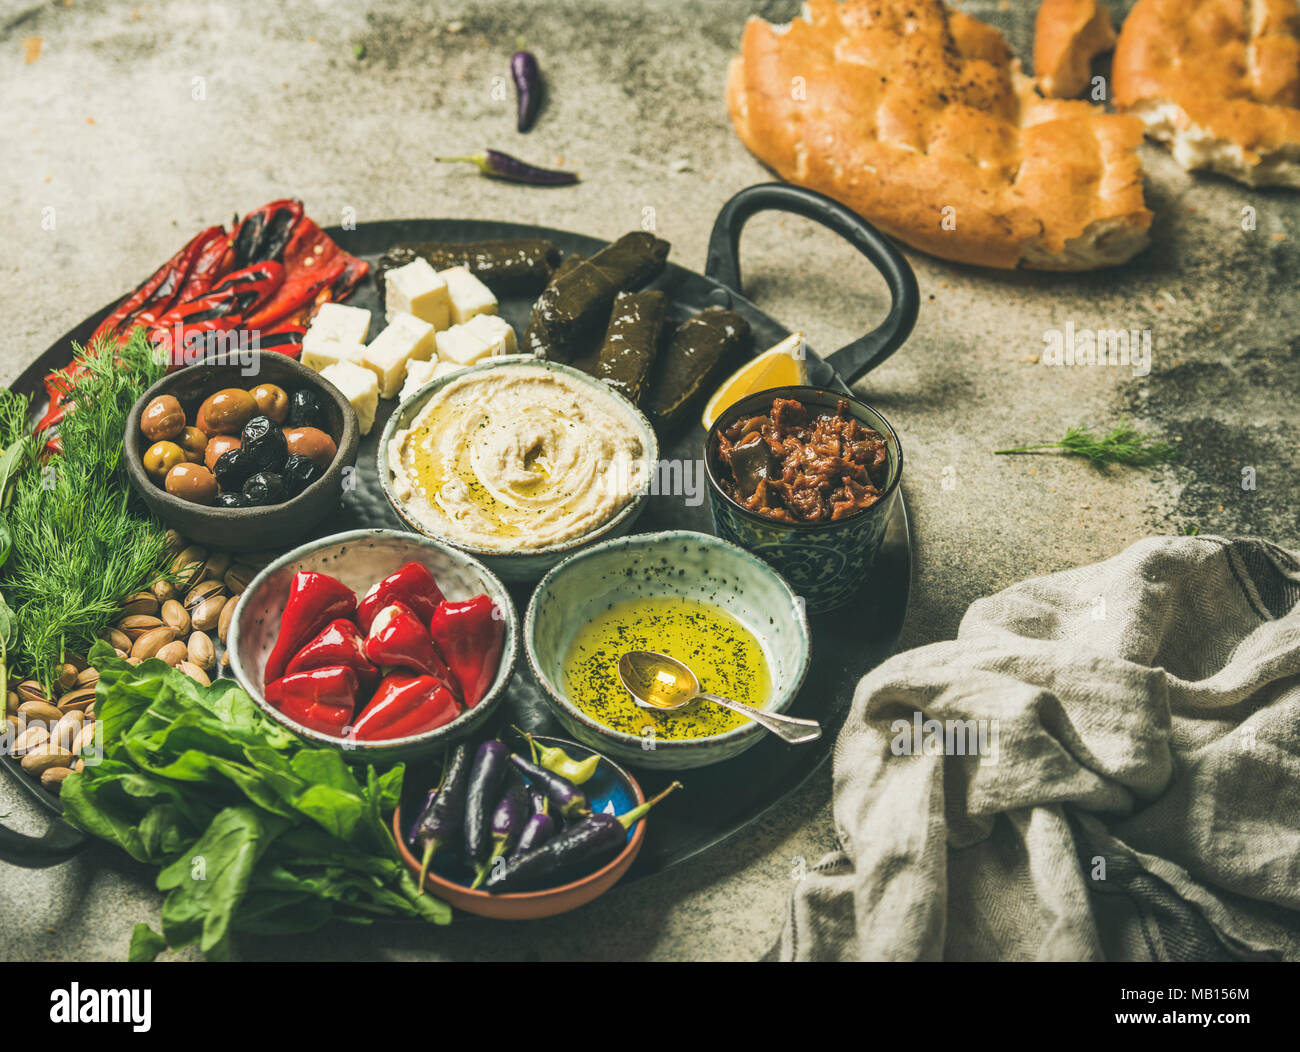 Mediterranean, Middle Eastern meze starter platter. Stuffed pickled paprikas, dolma, hummus, spiced oil, olives, sundried tomatoes, nuts, cheese, flat - Stock Image